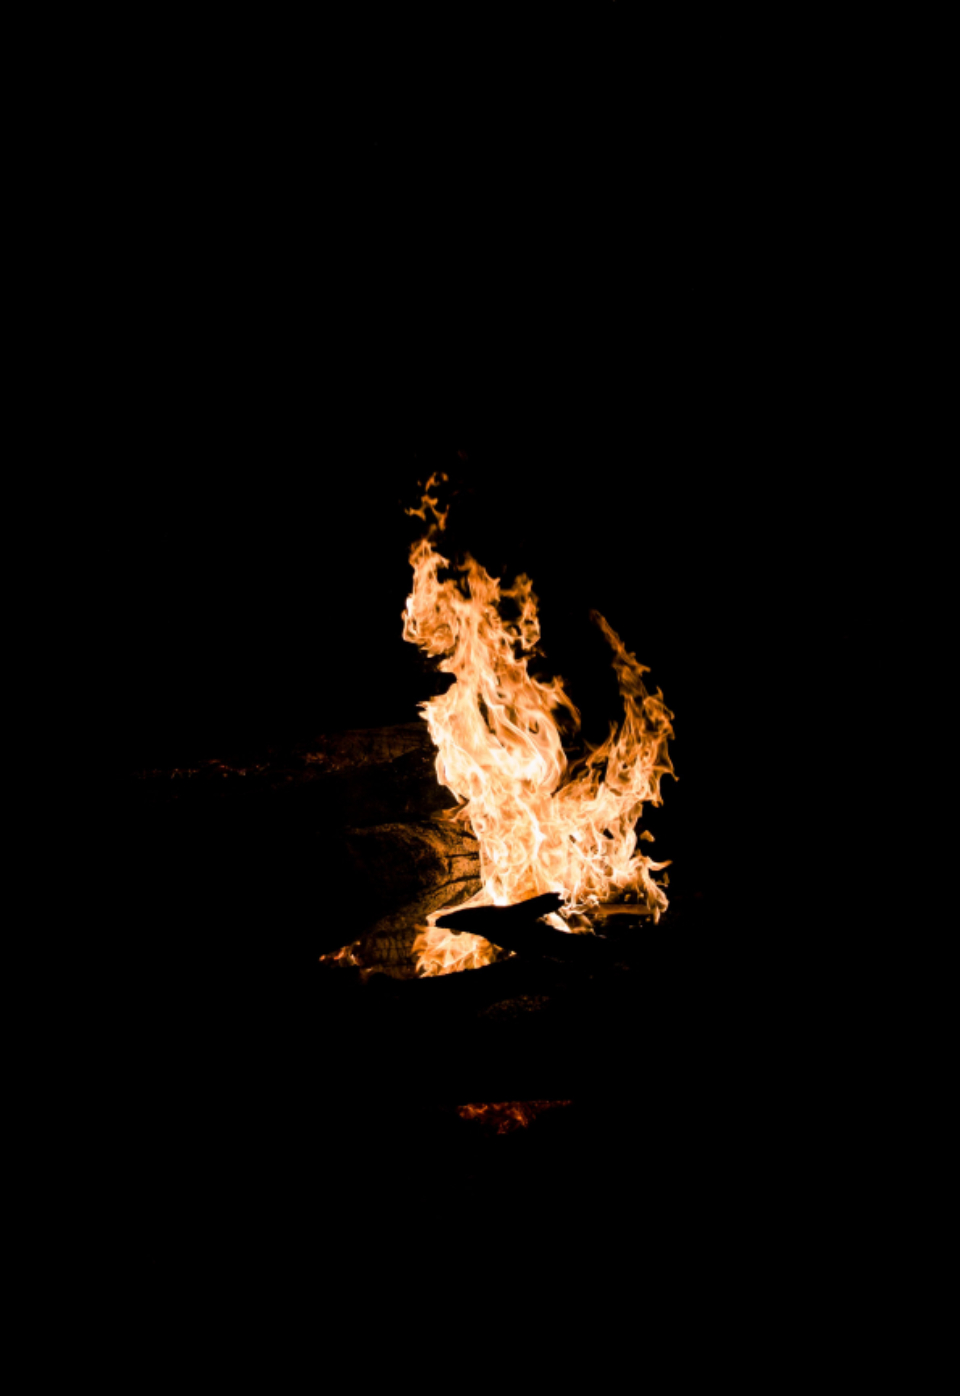 flame fire night black campfire warm blazing burn bonfire burning wood firewood heat